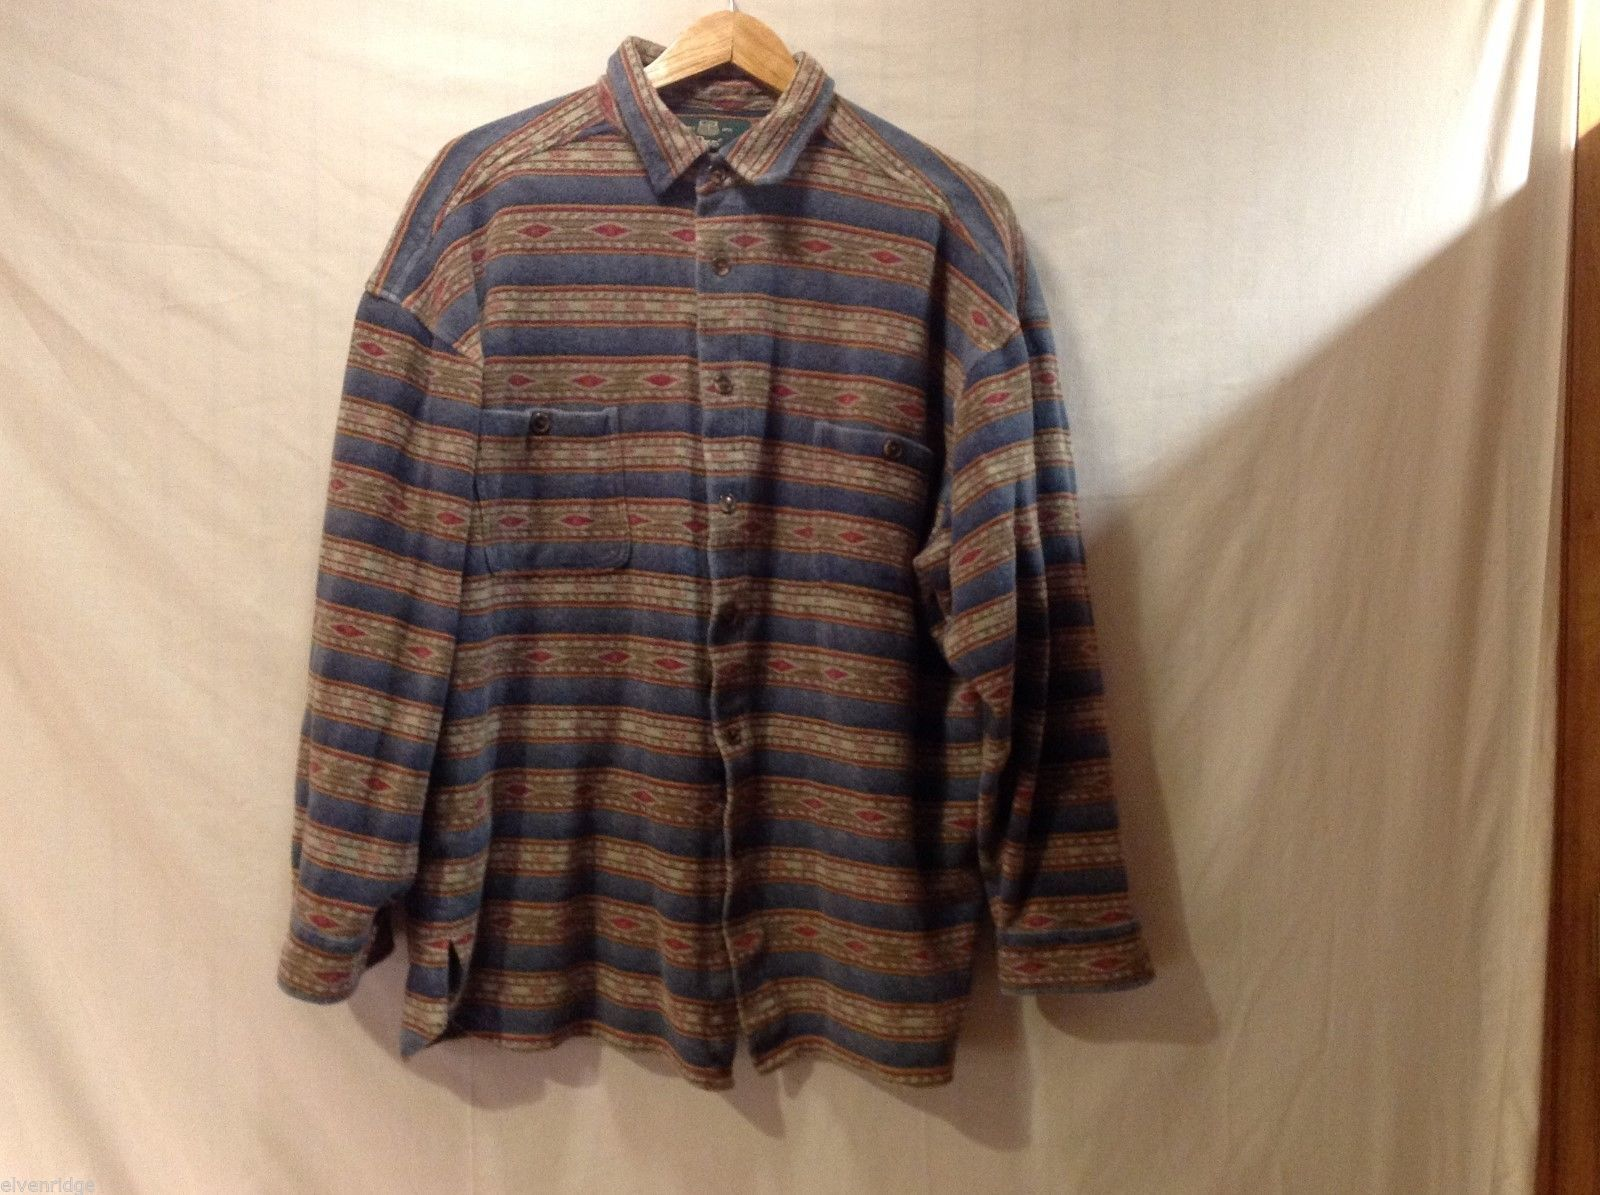 Unisex Orvis Multi-colored Striped Flannel, Size Large